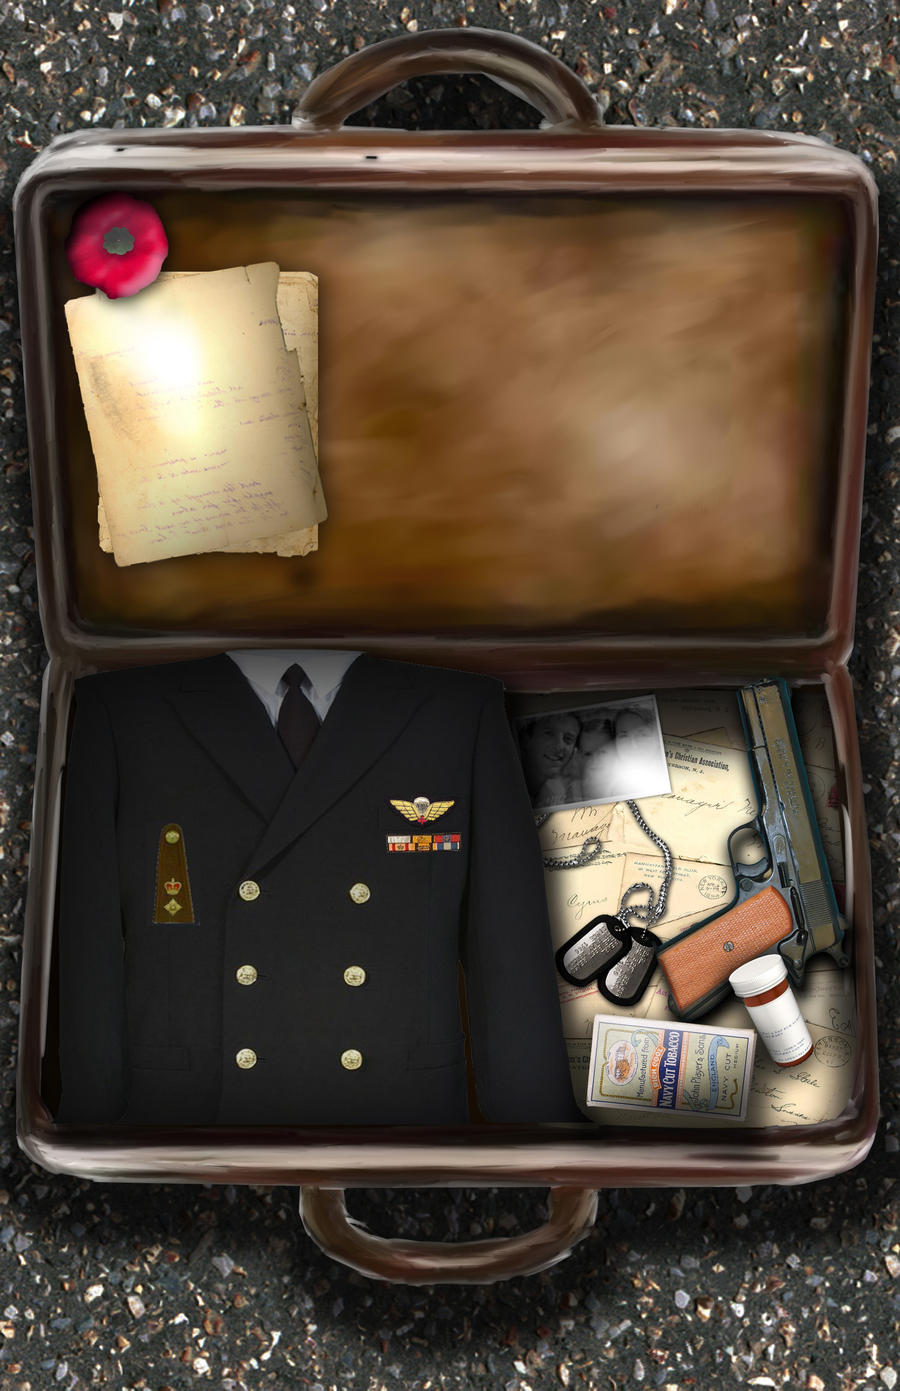 Rememberance suitcase by frankhong